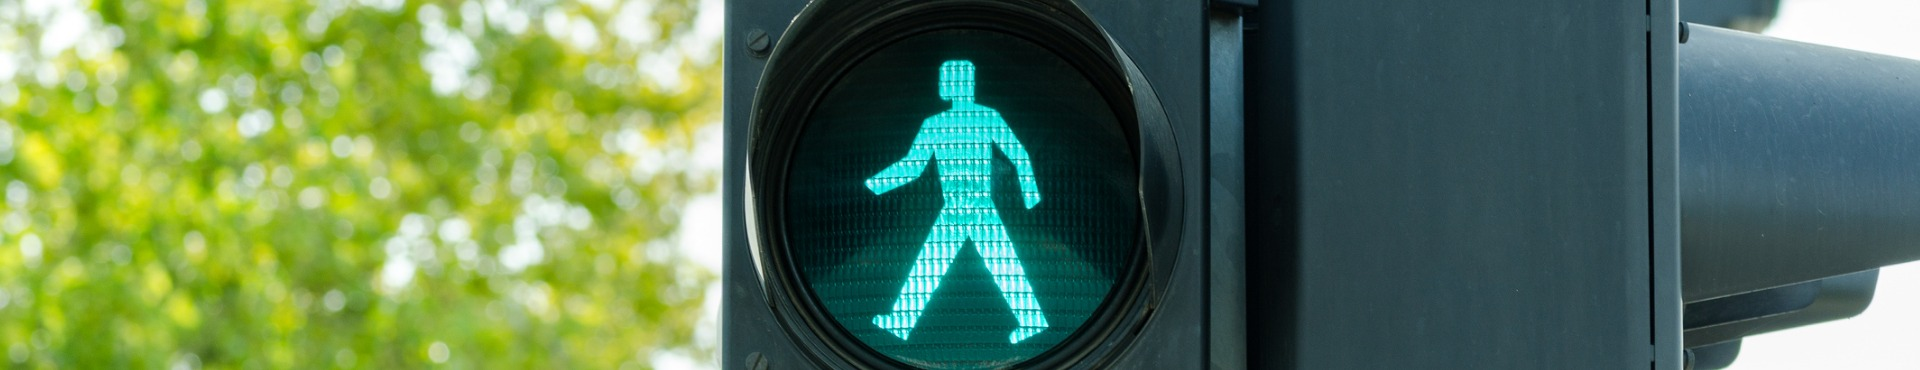 Shine Lawyers | Green traffic light for pedestrians on the crosswalk